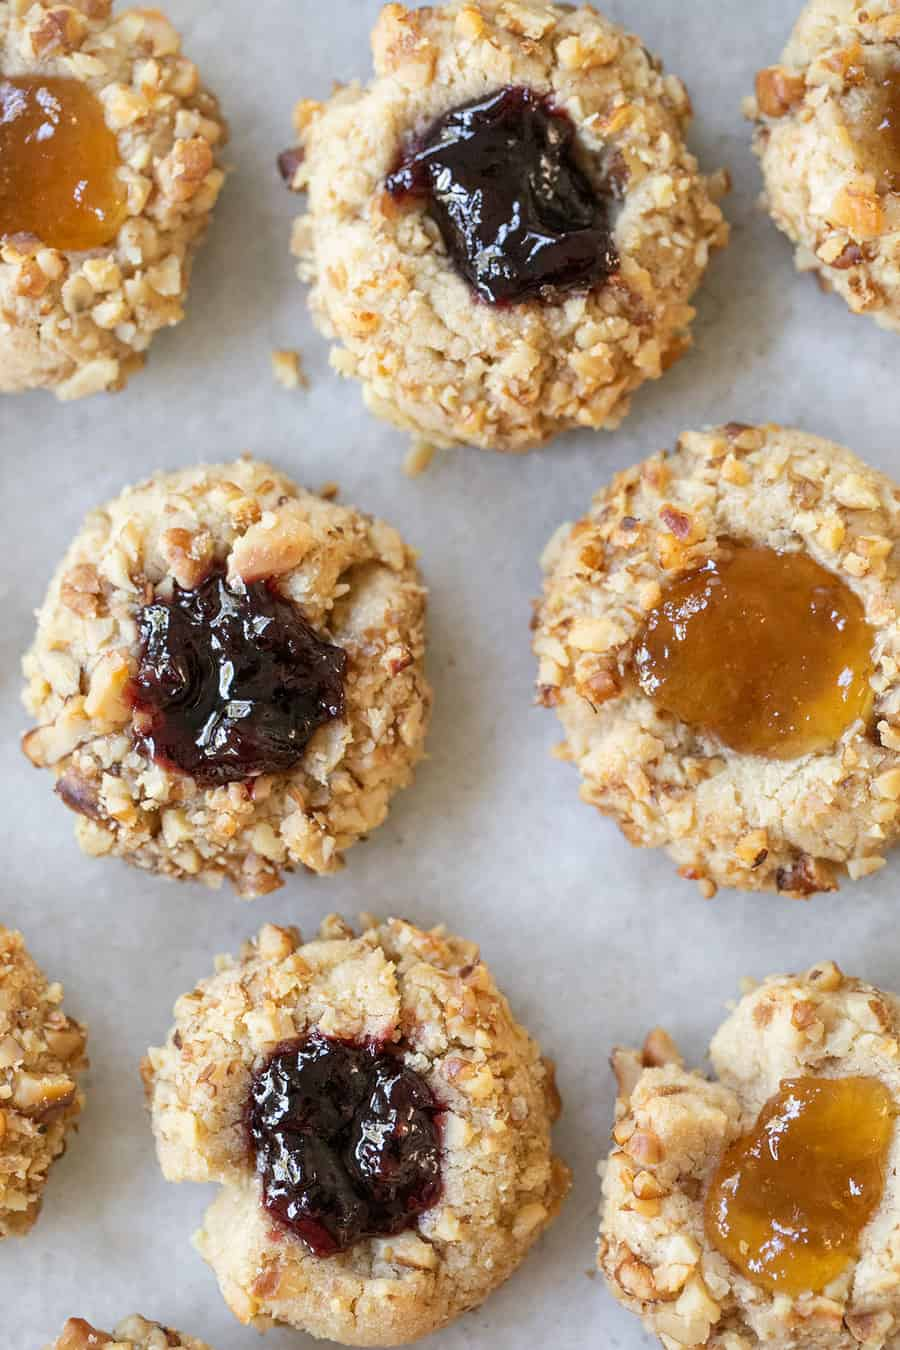 Thumbprint cookies filled with jam